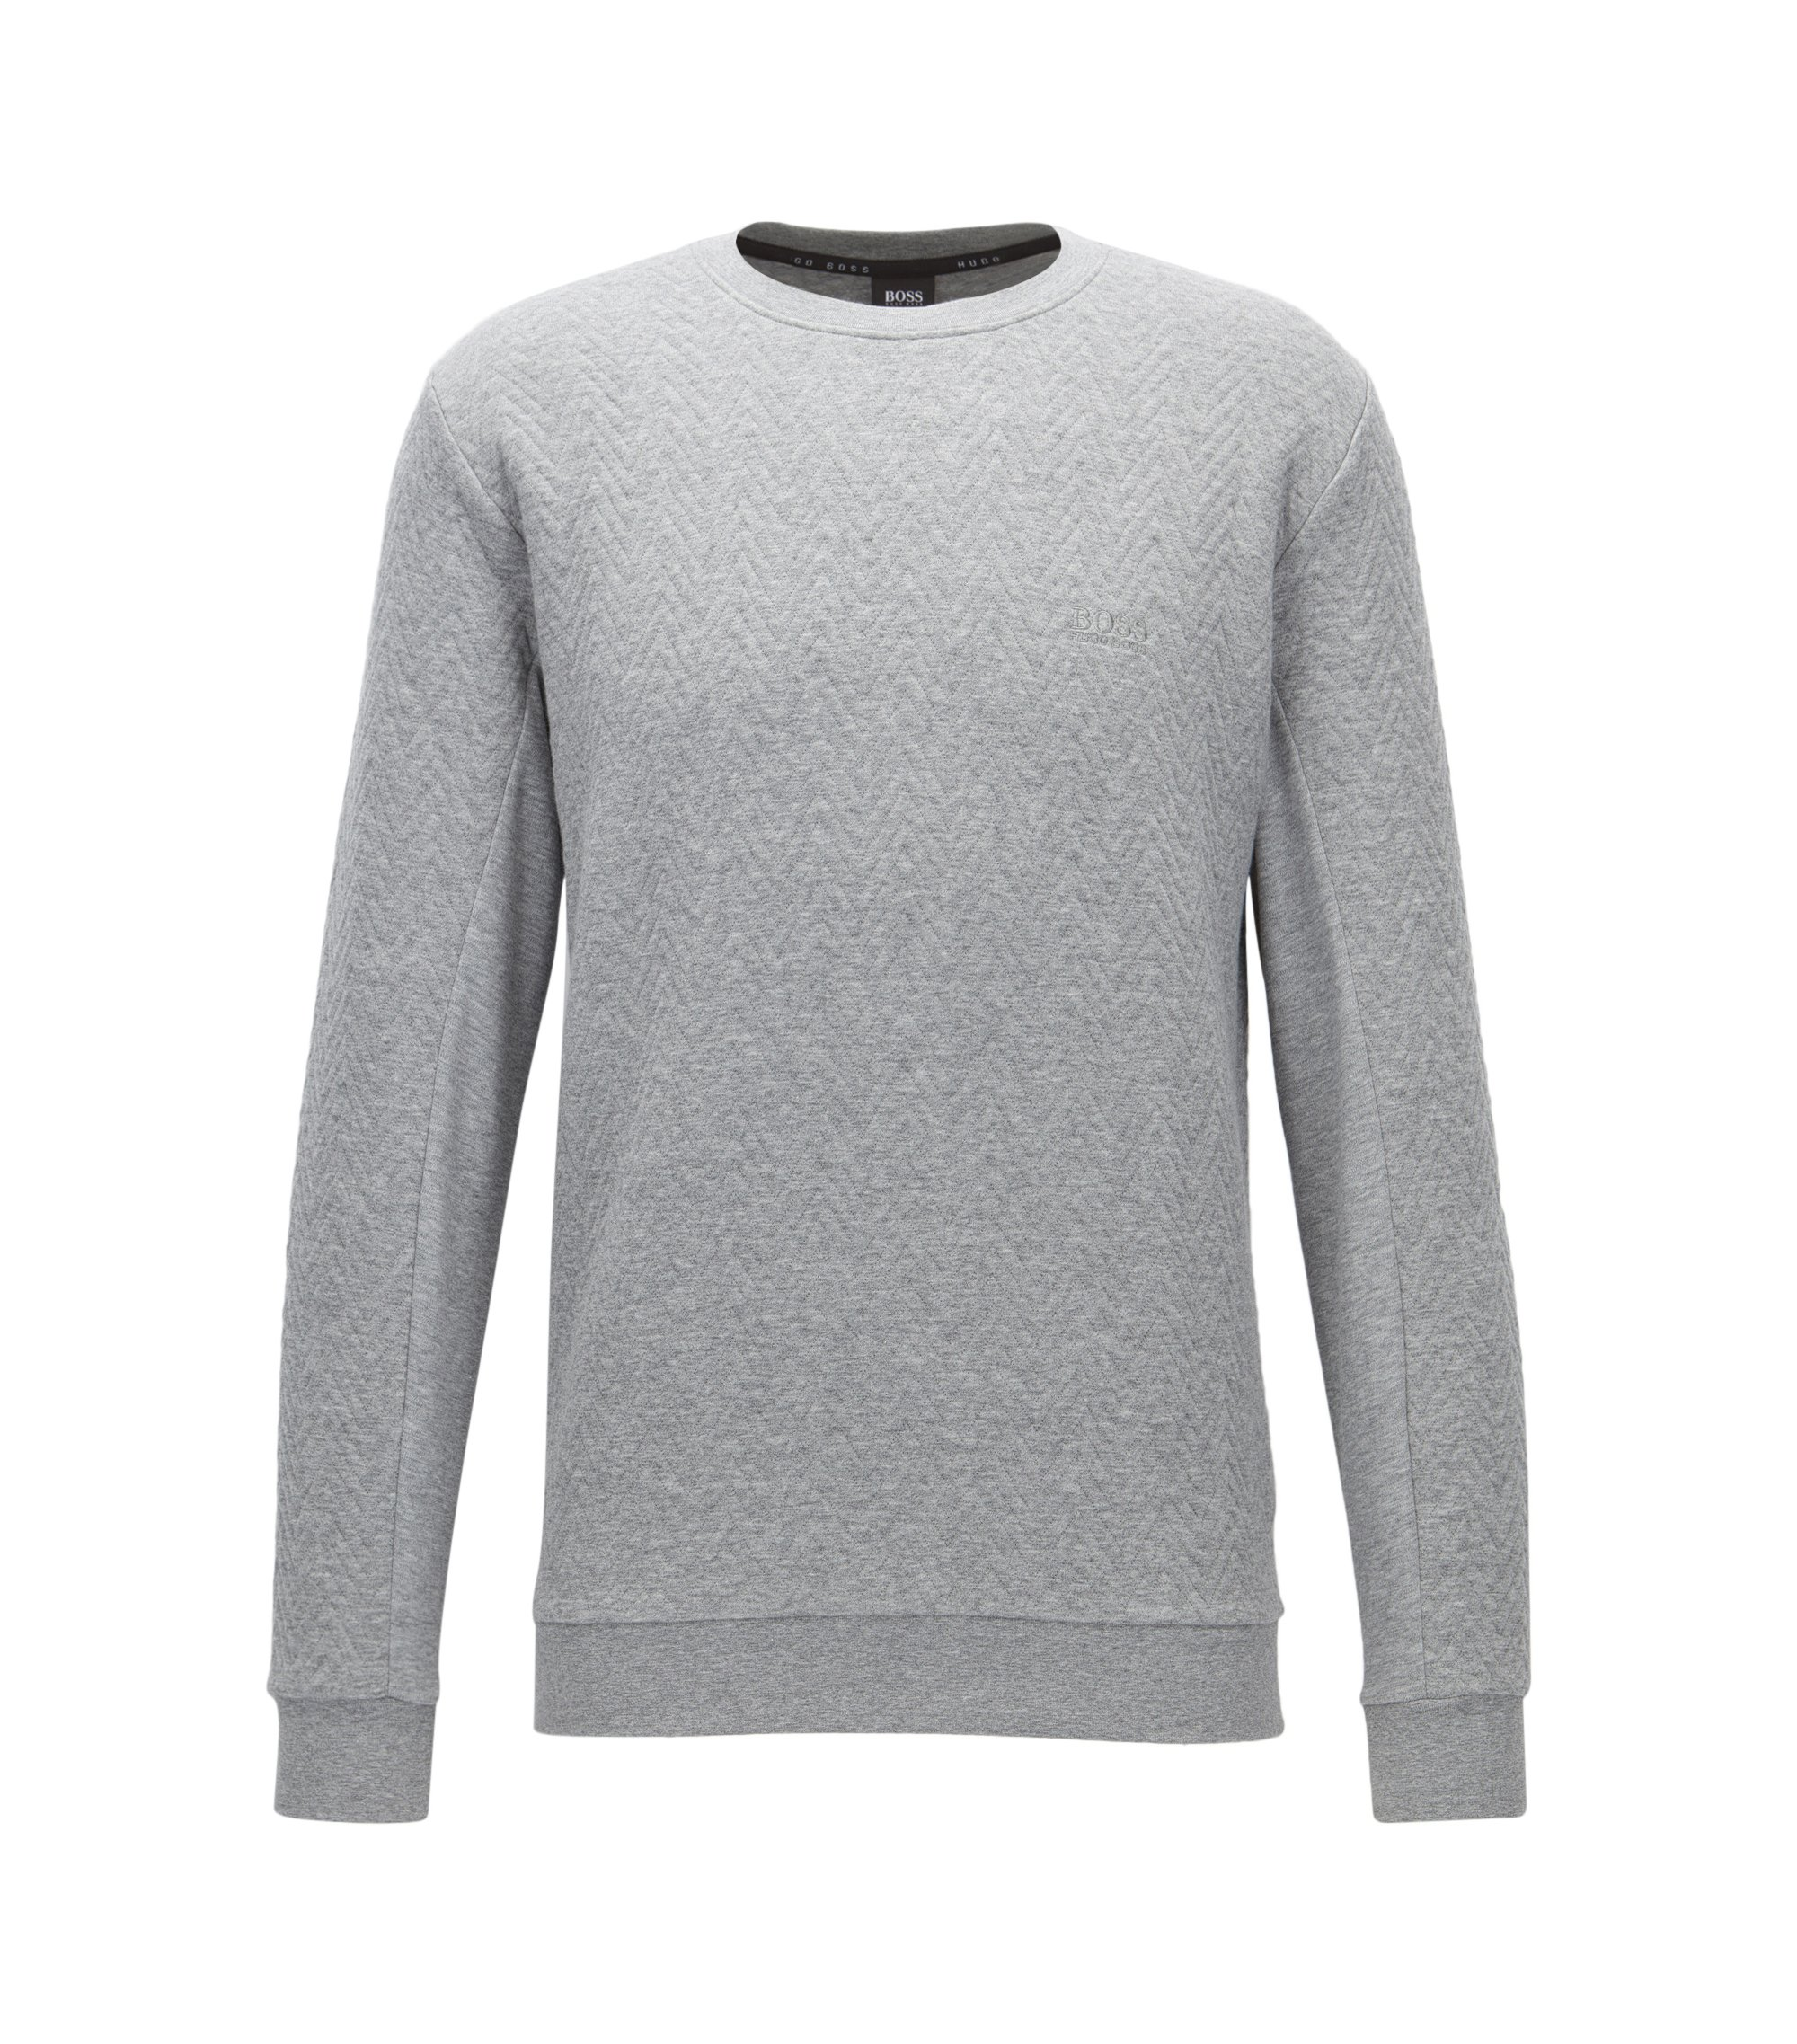 Herringbone-quilted crew-neck sweatshirt in cotton, Grey